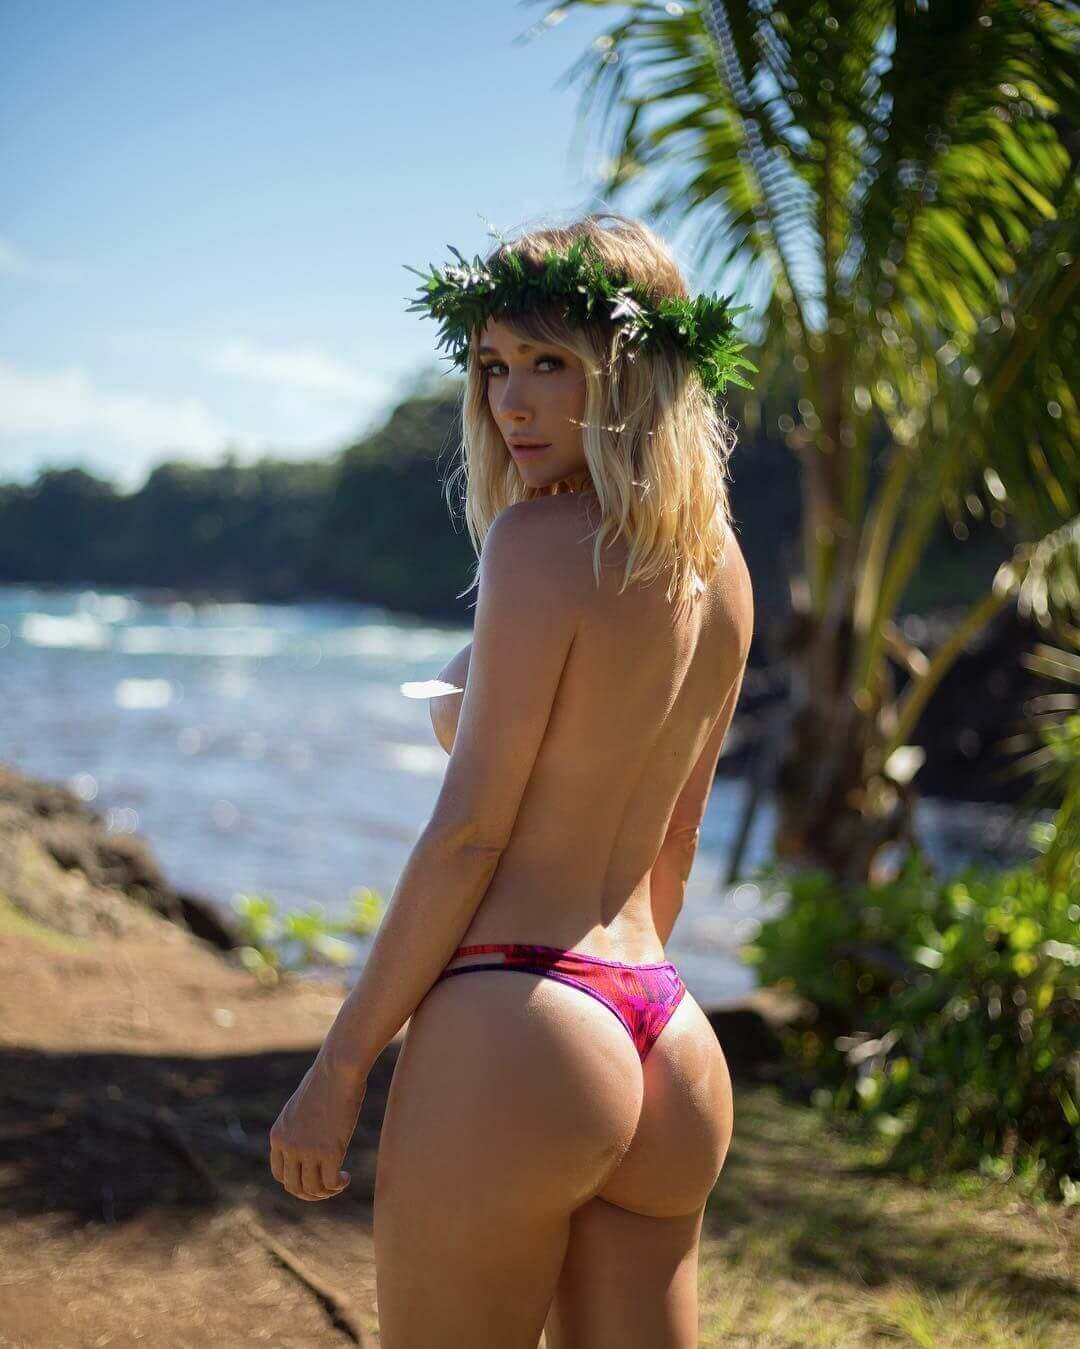 49 Hot Pictures Of Sara Jean Underwood Which Are Sure To Hypnotize